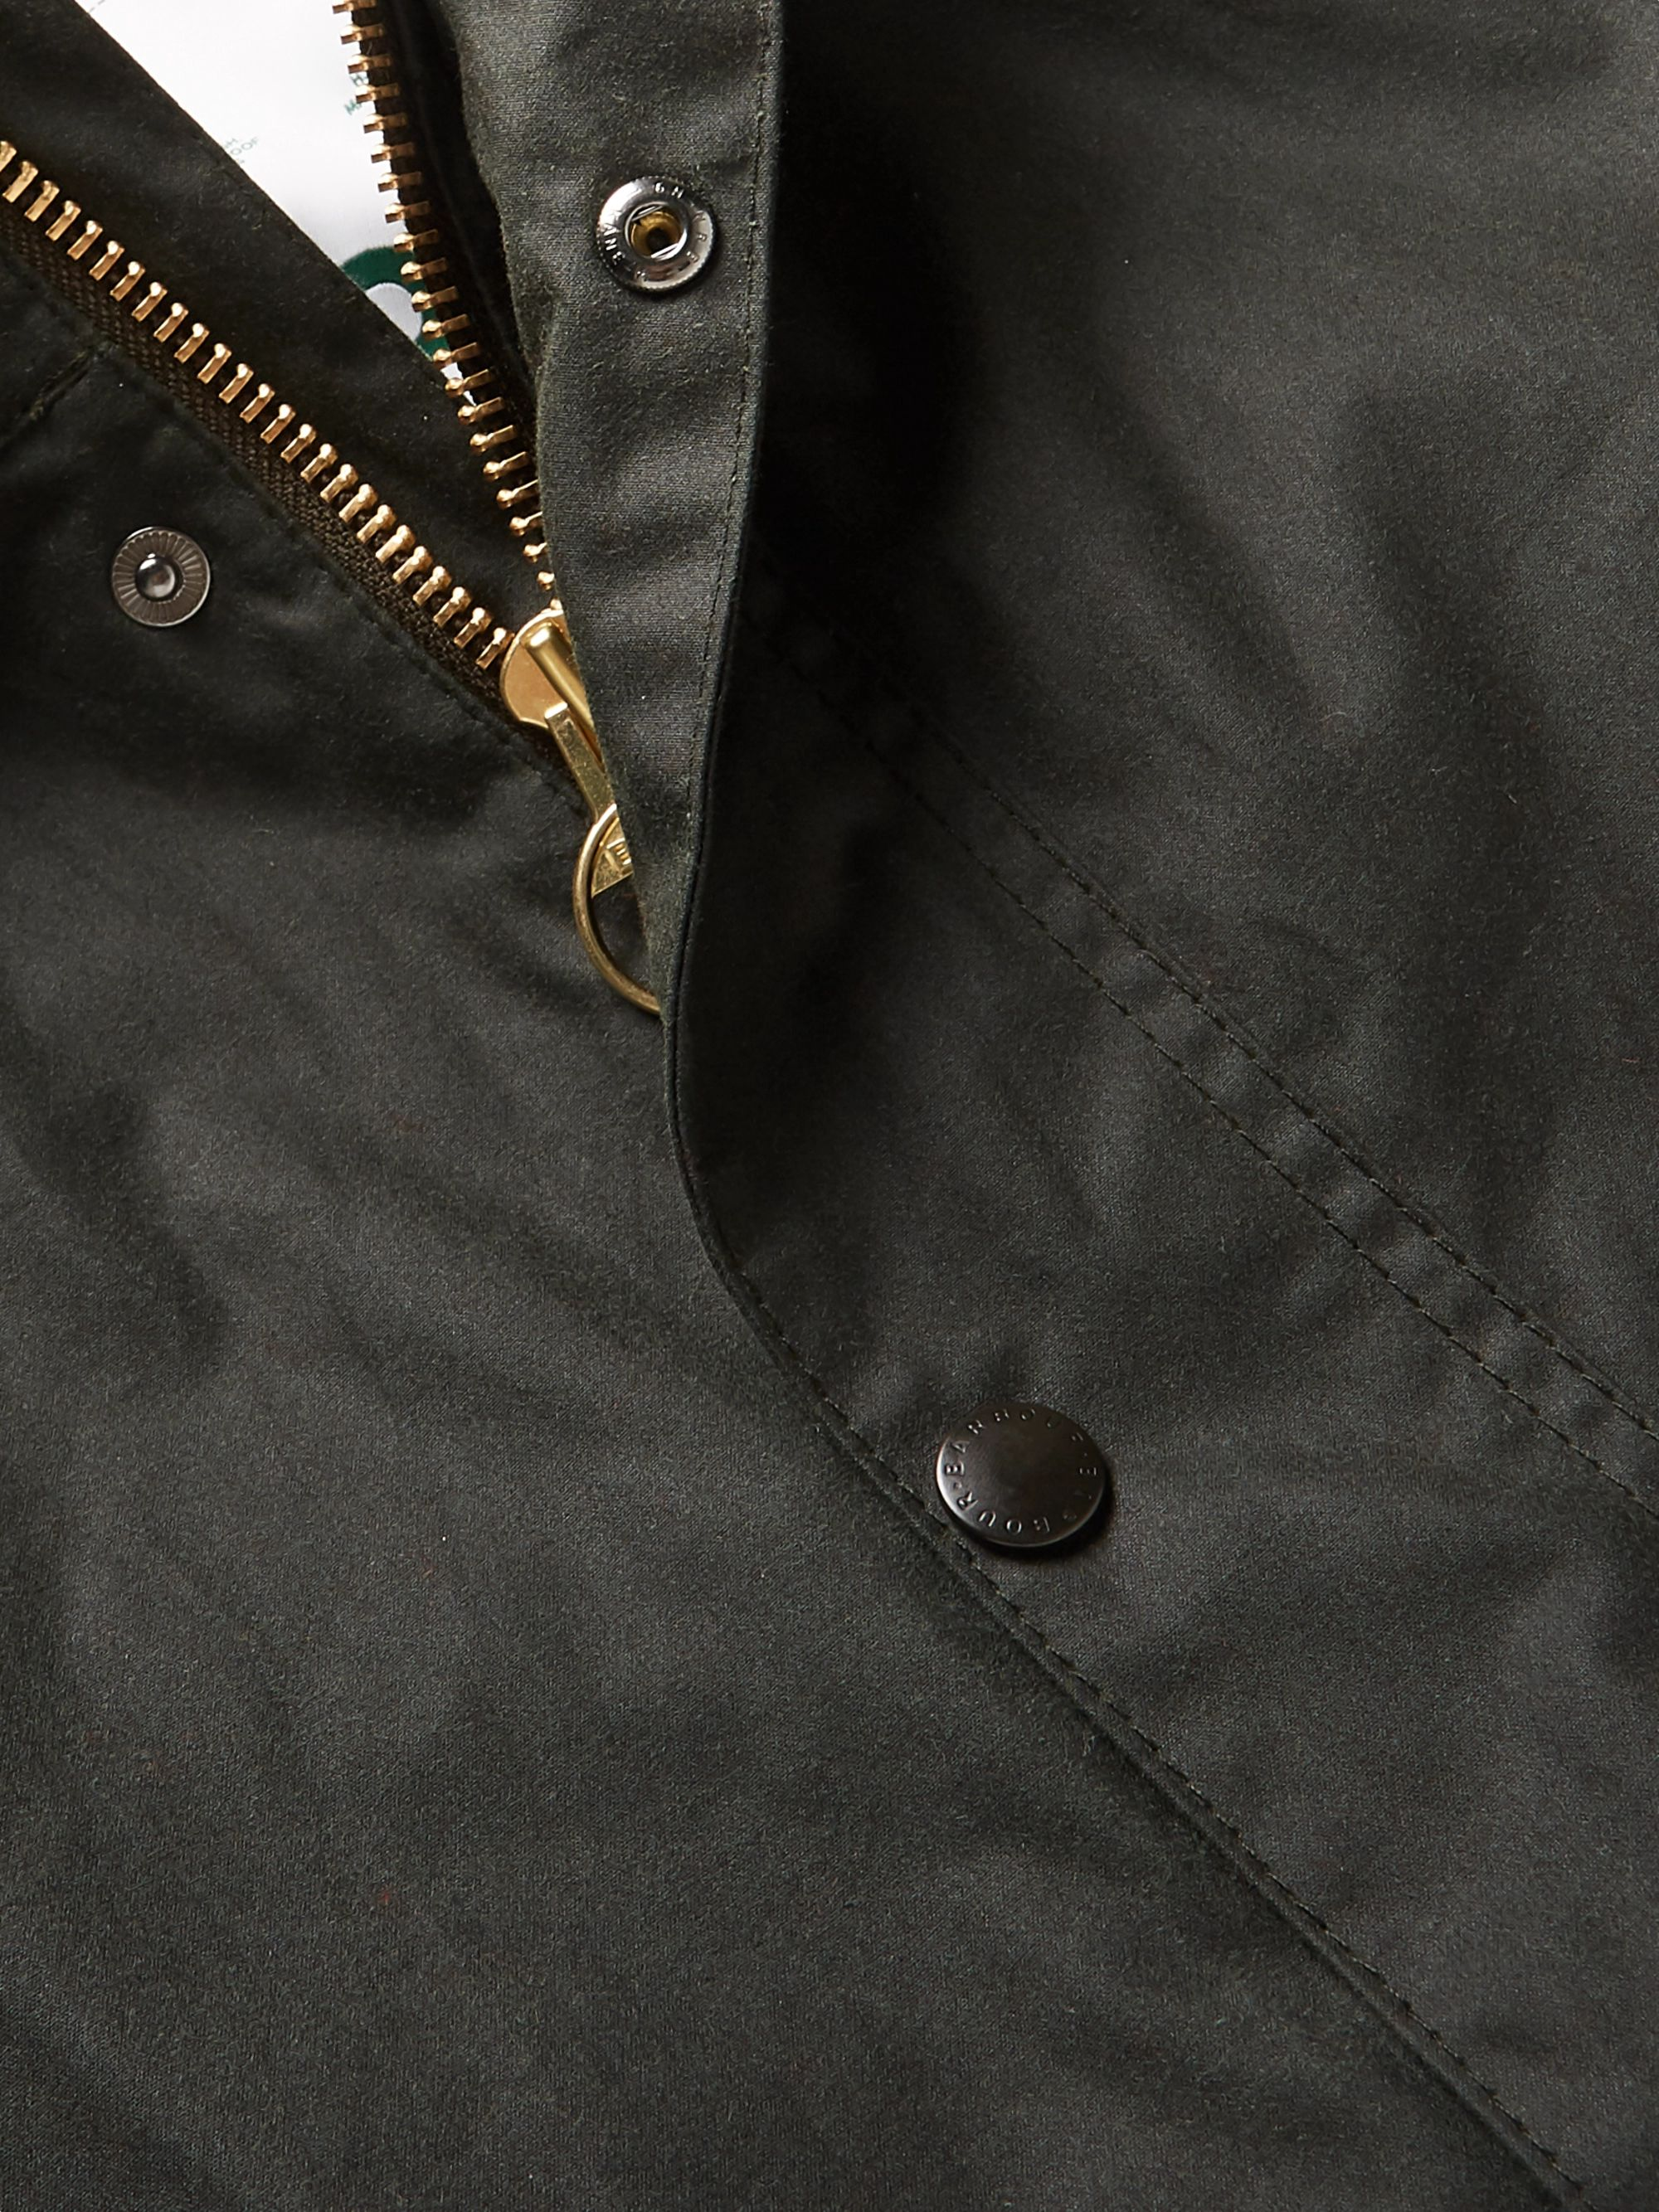 Barbour White Label White Label Hooded Waxed-Cotton Jacket